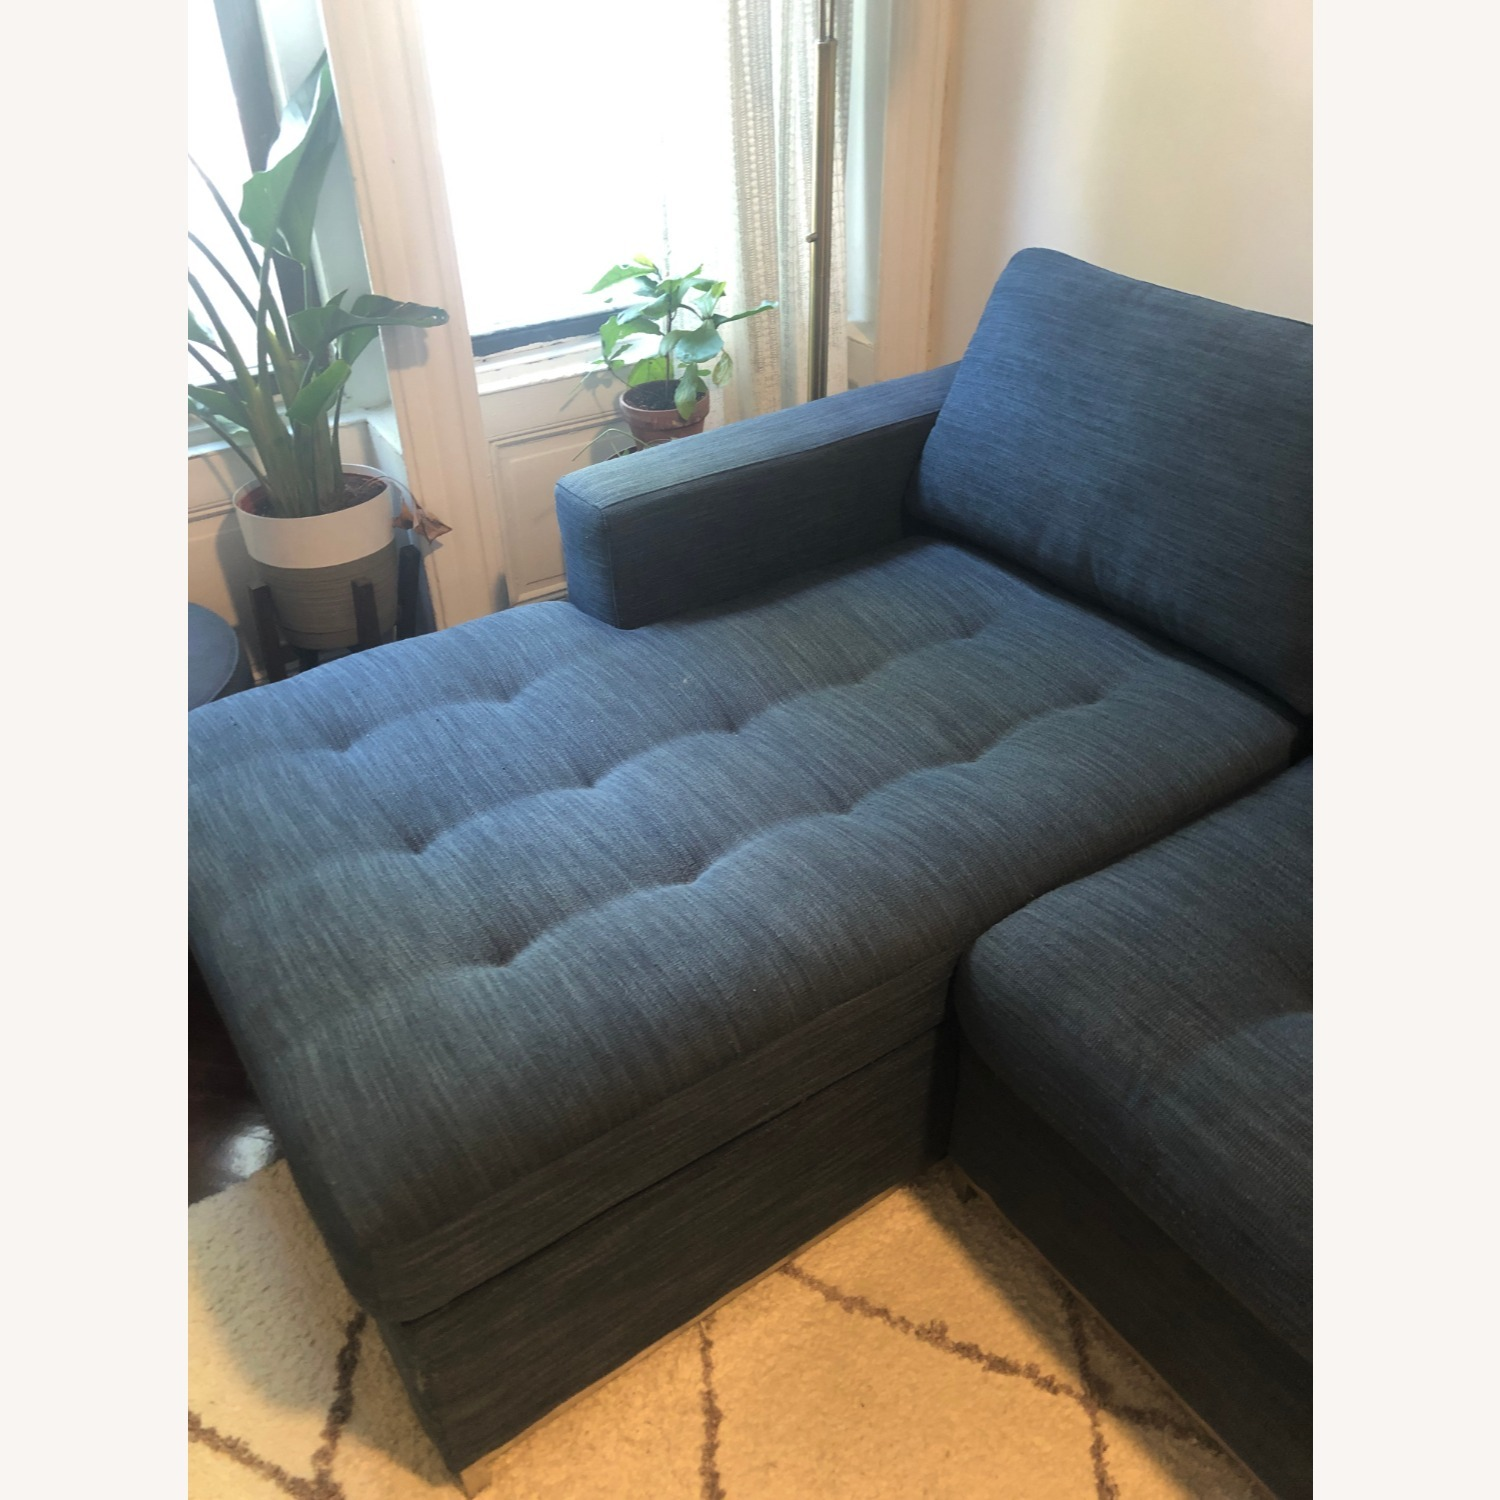 Article Soma Midnight Blue Sleeper Sectional Sofa - image-10